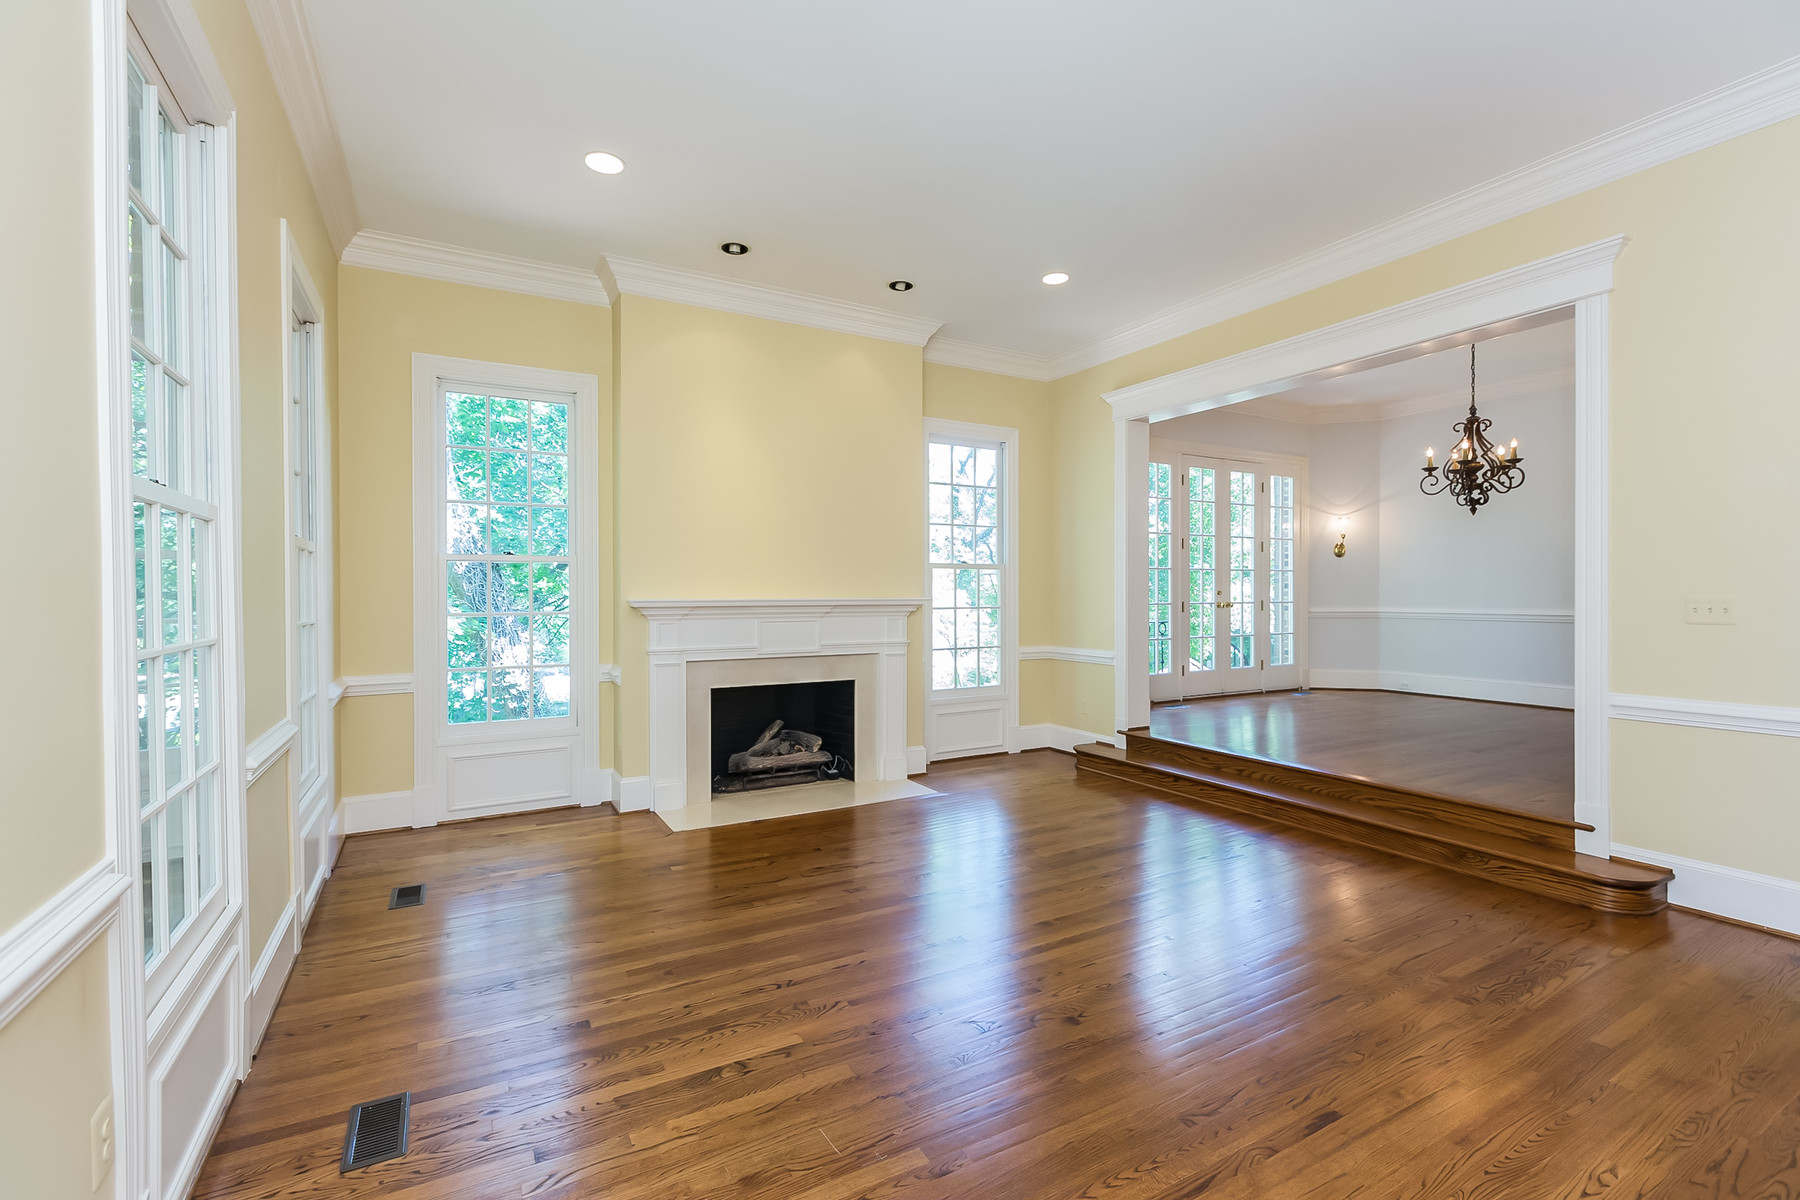 Additional photo for property listing at 1209 Stuart Robeson Drive, Mclean  McLean, Virginia 22101 Vereinigte Staaten